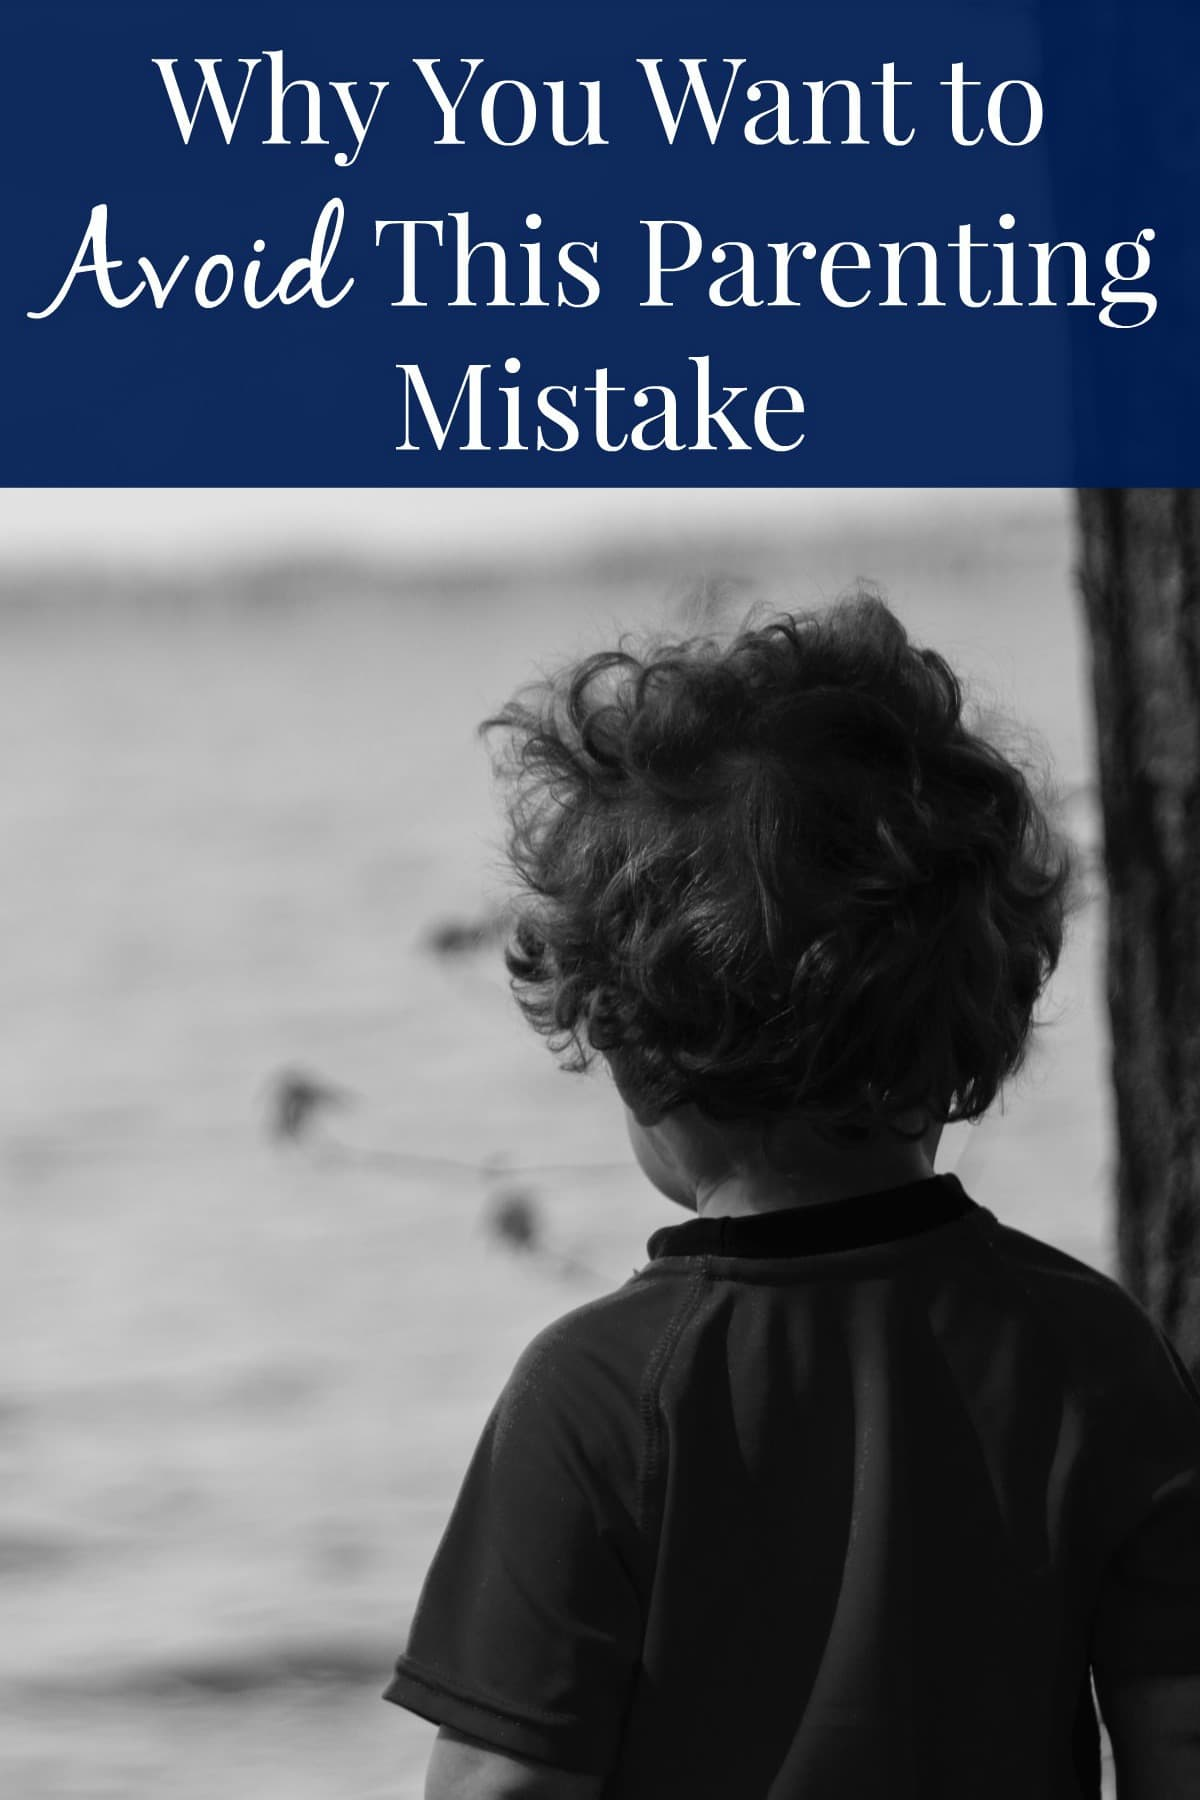 When I first read that parenting without ultimatums was more effective, I was confused. Once I figured out how to parent this way, my kids began to listen better and our family was more peaceful. Inspired by the Danish Way of Parenting, this positive parenting approach is powerful. #timeins #parentingtoddlers #ultimatumparenting #positivediscipline #parenting #parentingfromtheheart #timeouts #parentingtips